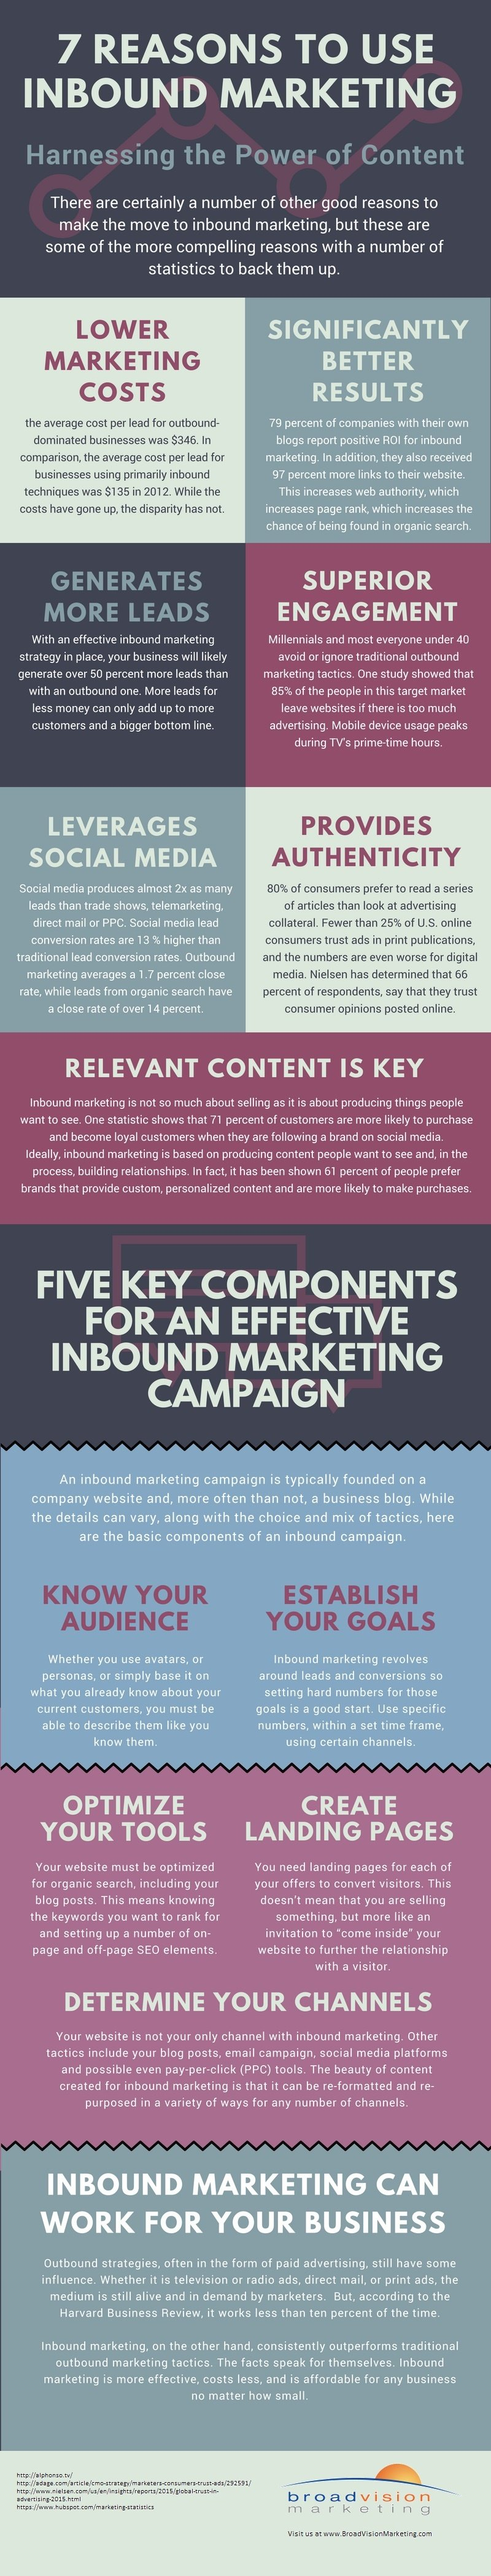 7-reasons-for-inbound-marketing.jpg